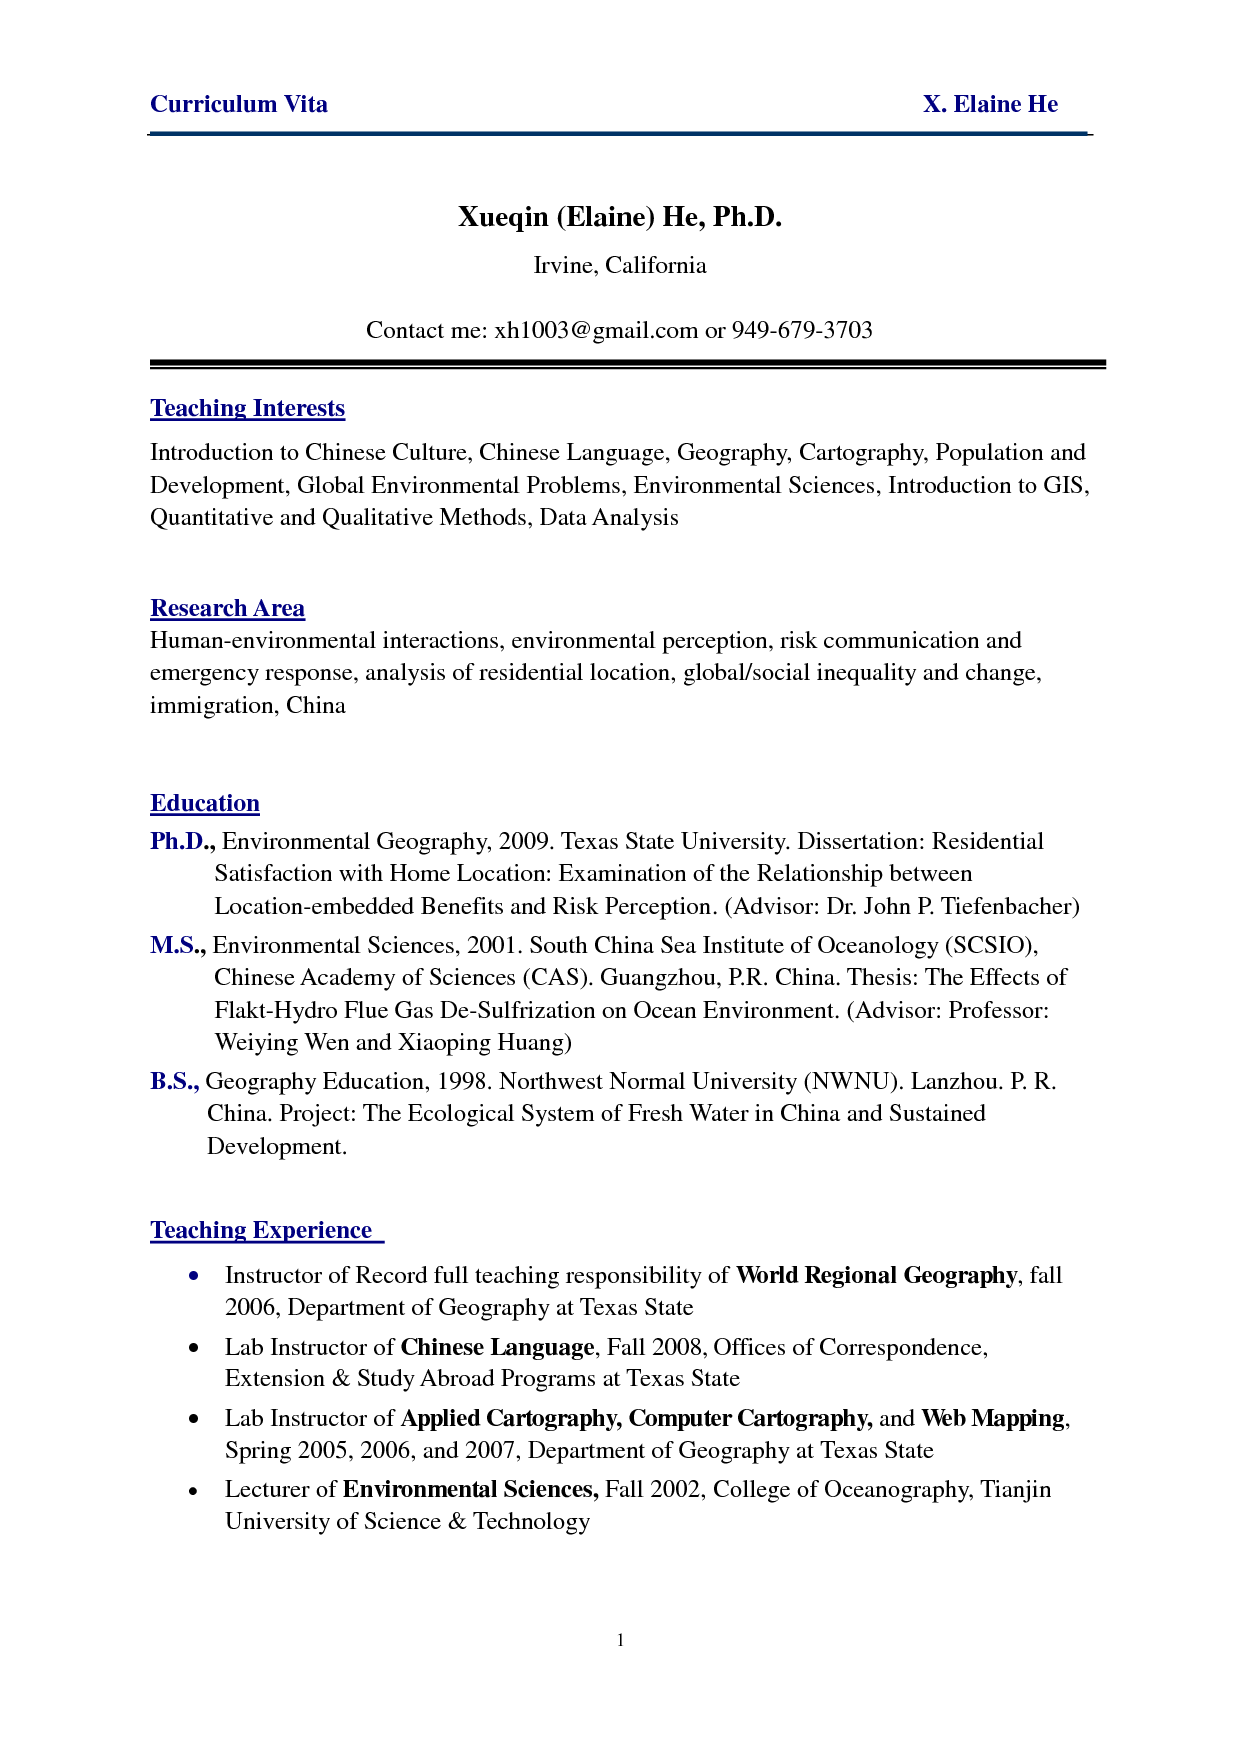 New Grad Lpn Resume Sample Nursing Hacked Lpn Resume